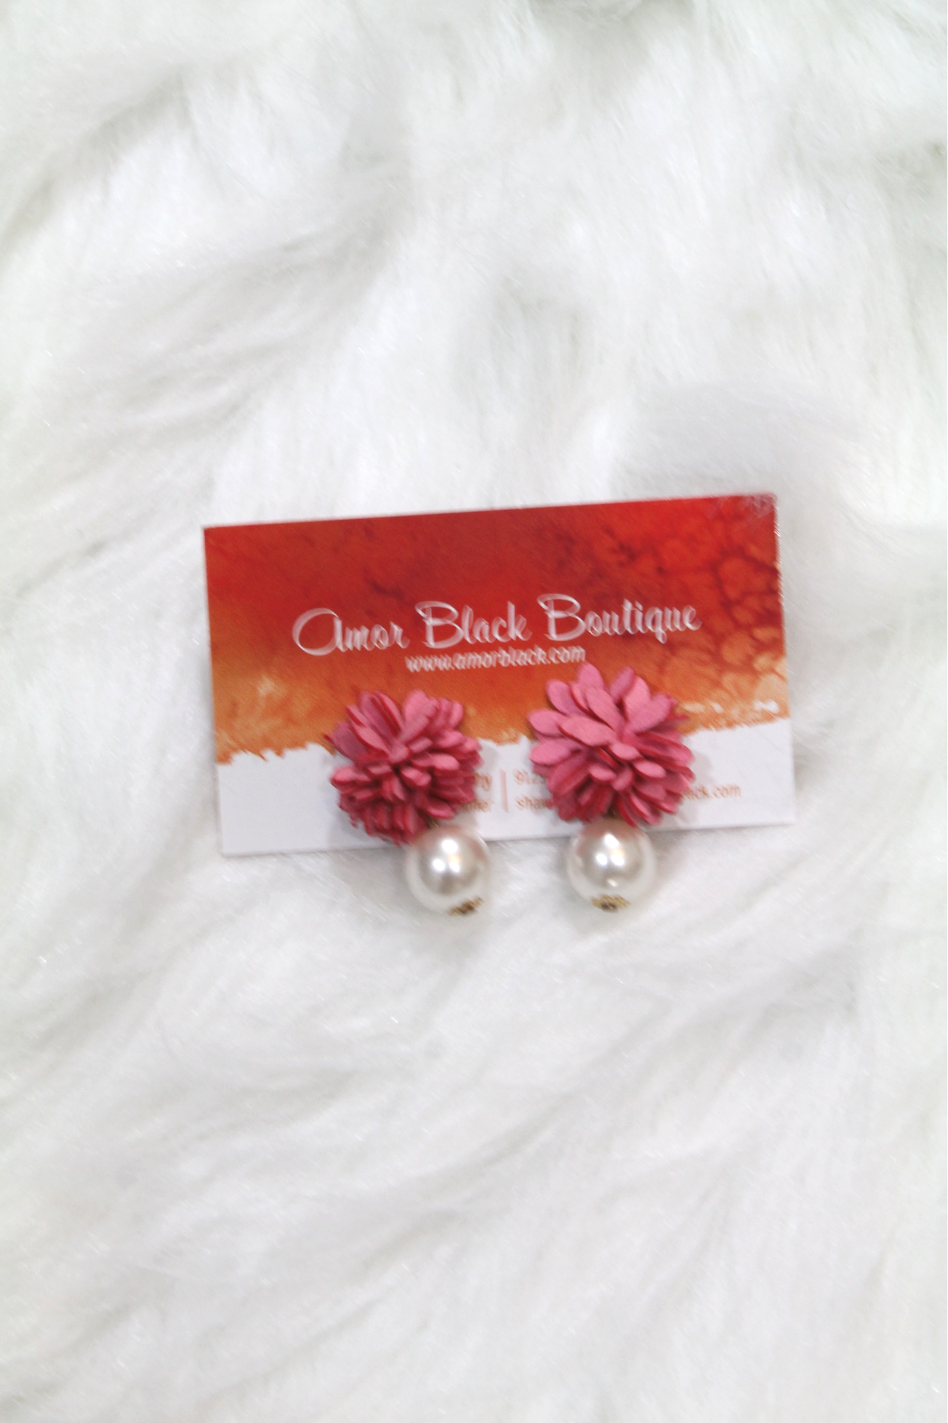 Flower Pearl Drop Earrings - Pink - Amor Black Boutique